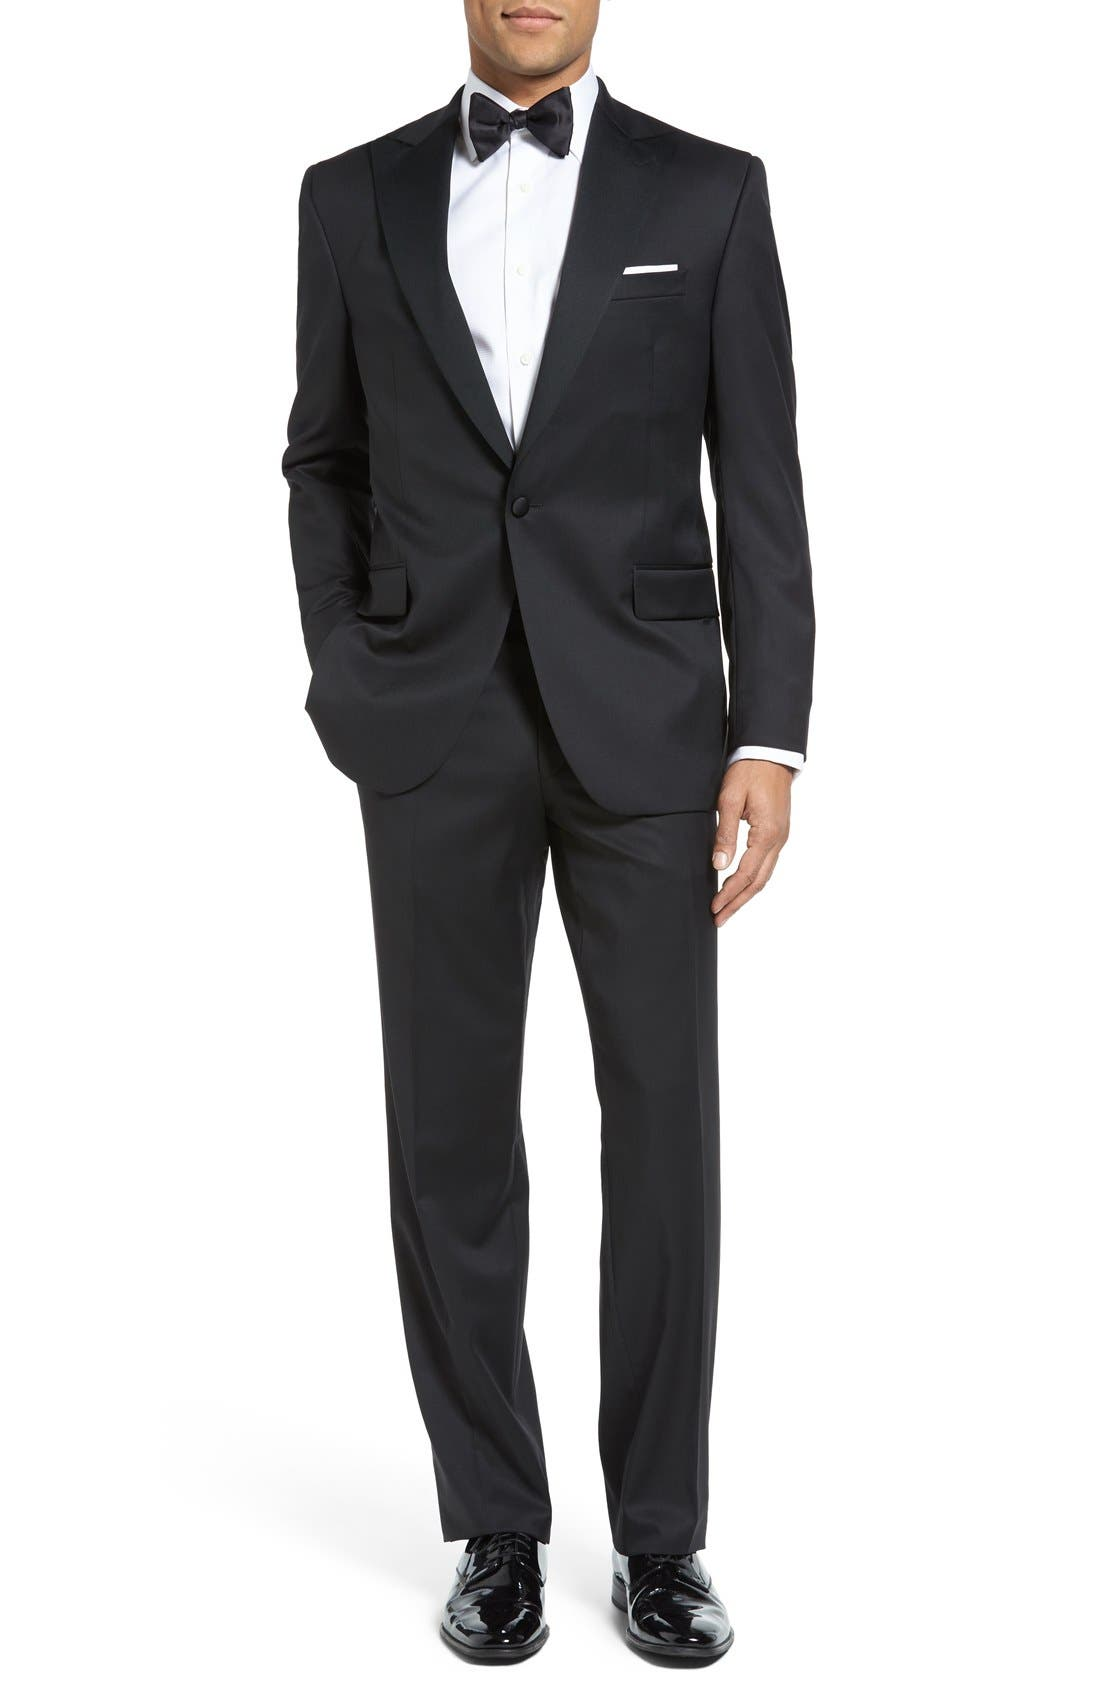 Alternate Image 1 Selected - David Donahue Russell Classic Fit Loro Piana Wool Tuxedo